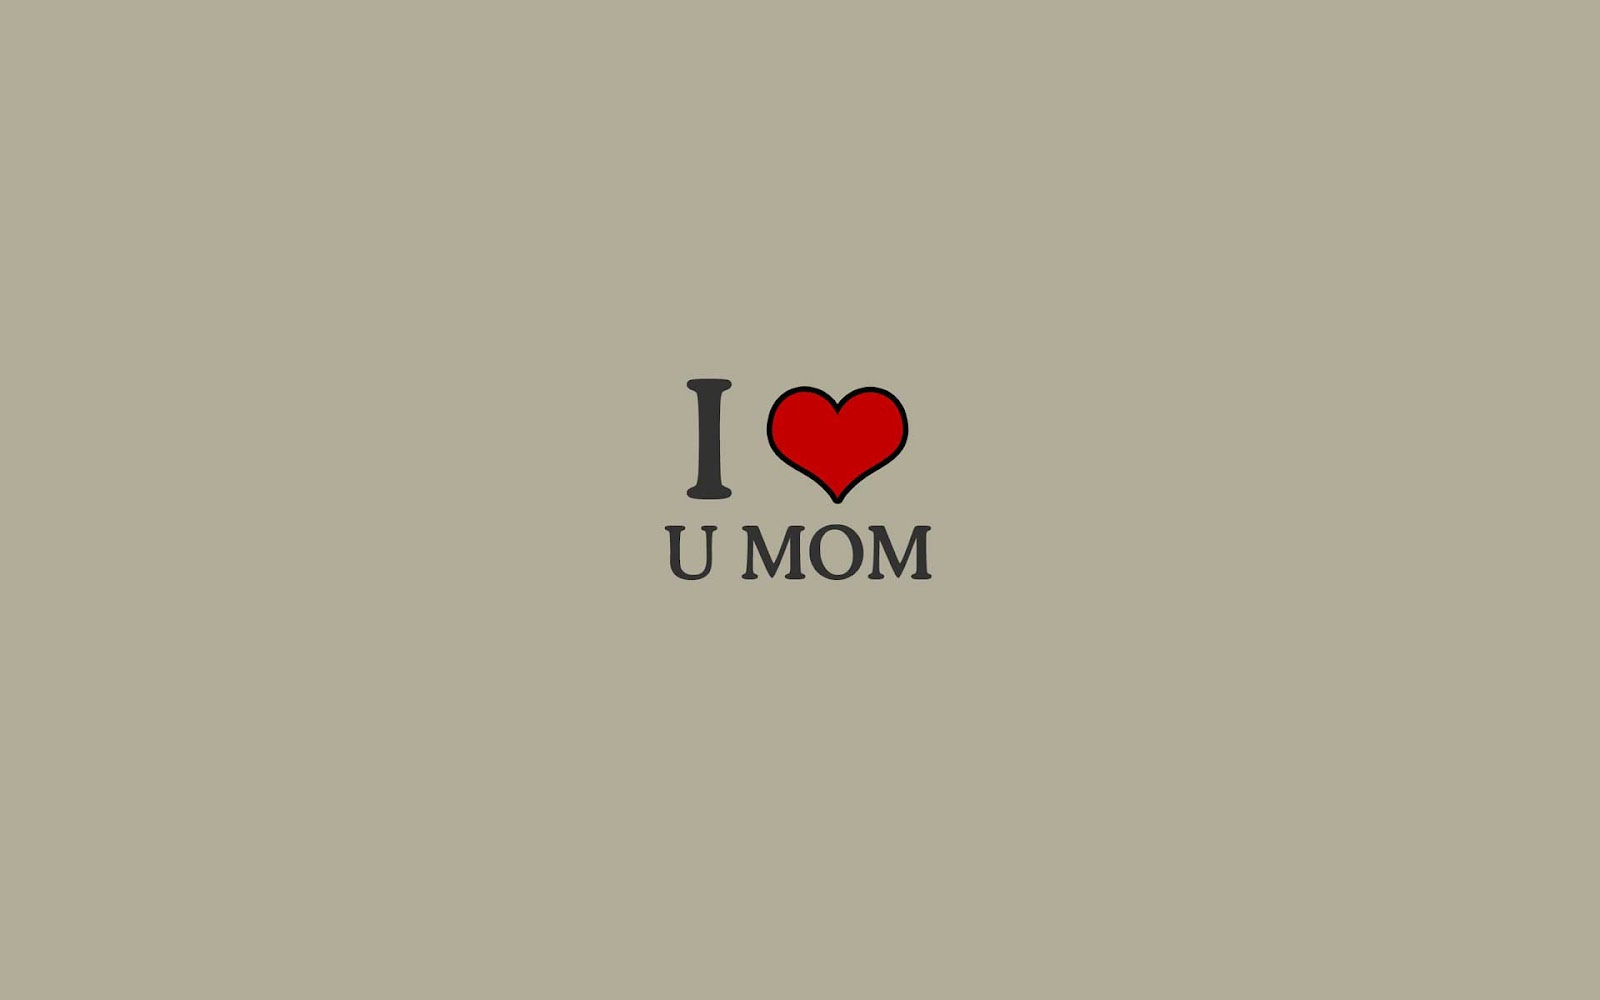 Love U cartoon Wallpaper : I Love You Mom Wallpapers Free christian Wallpapers